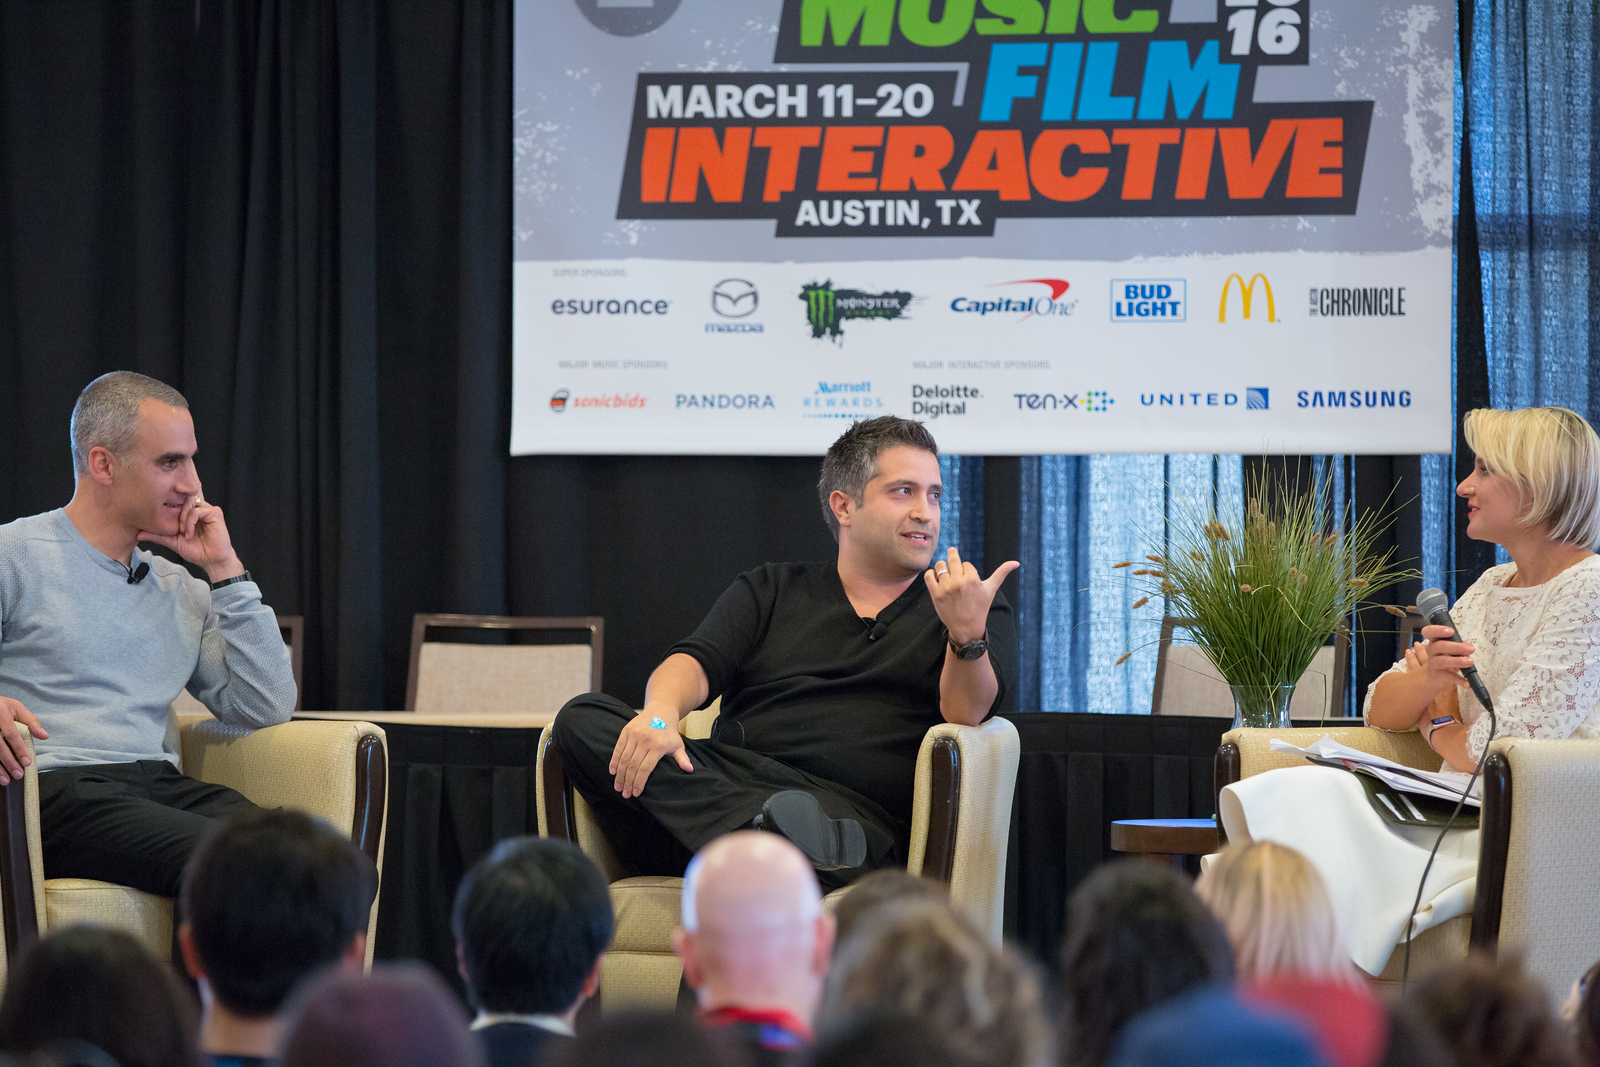 #SXHW @s2 Beauty 2.0 - The role of innovation in today's beauty industry - Andre Yousefi, Co-founder at PCH Lime Lab - Guive Balooch, Global Vice President of L'Oréal's Technology Incubator  Moderated by Maghan McDowell, WWD.